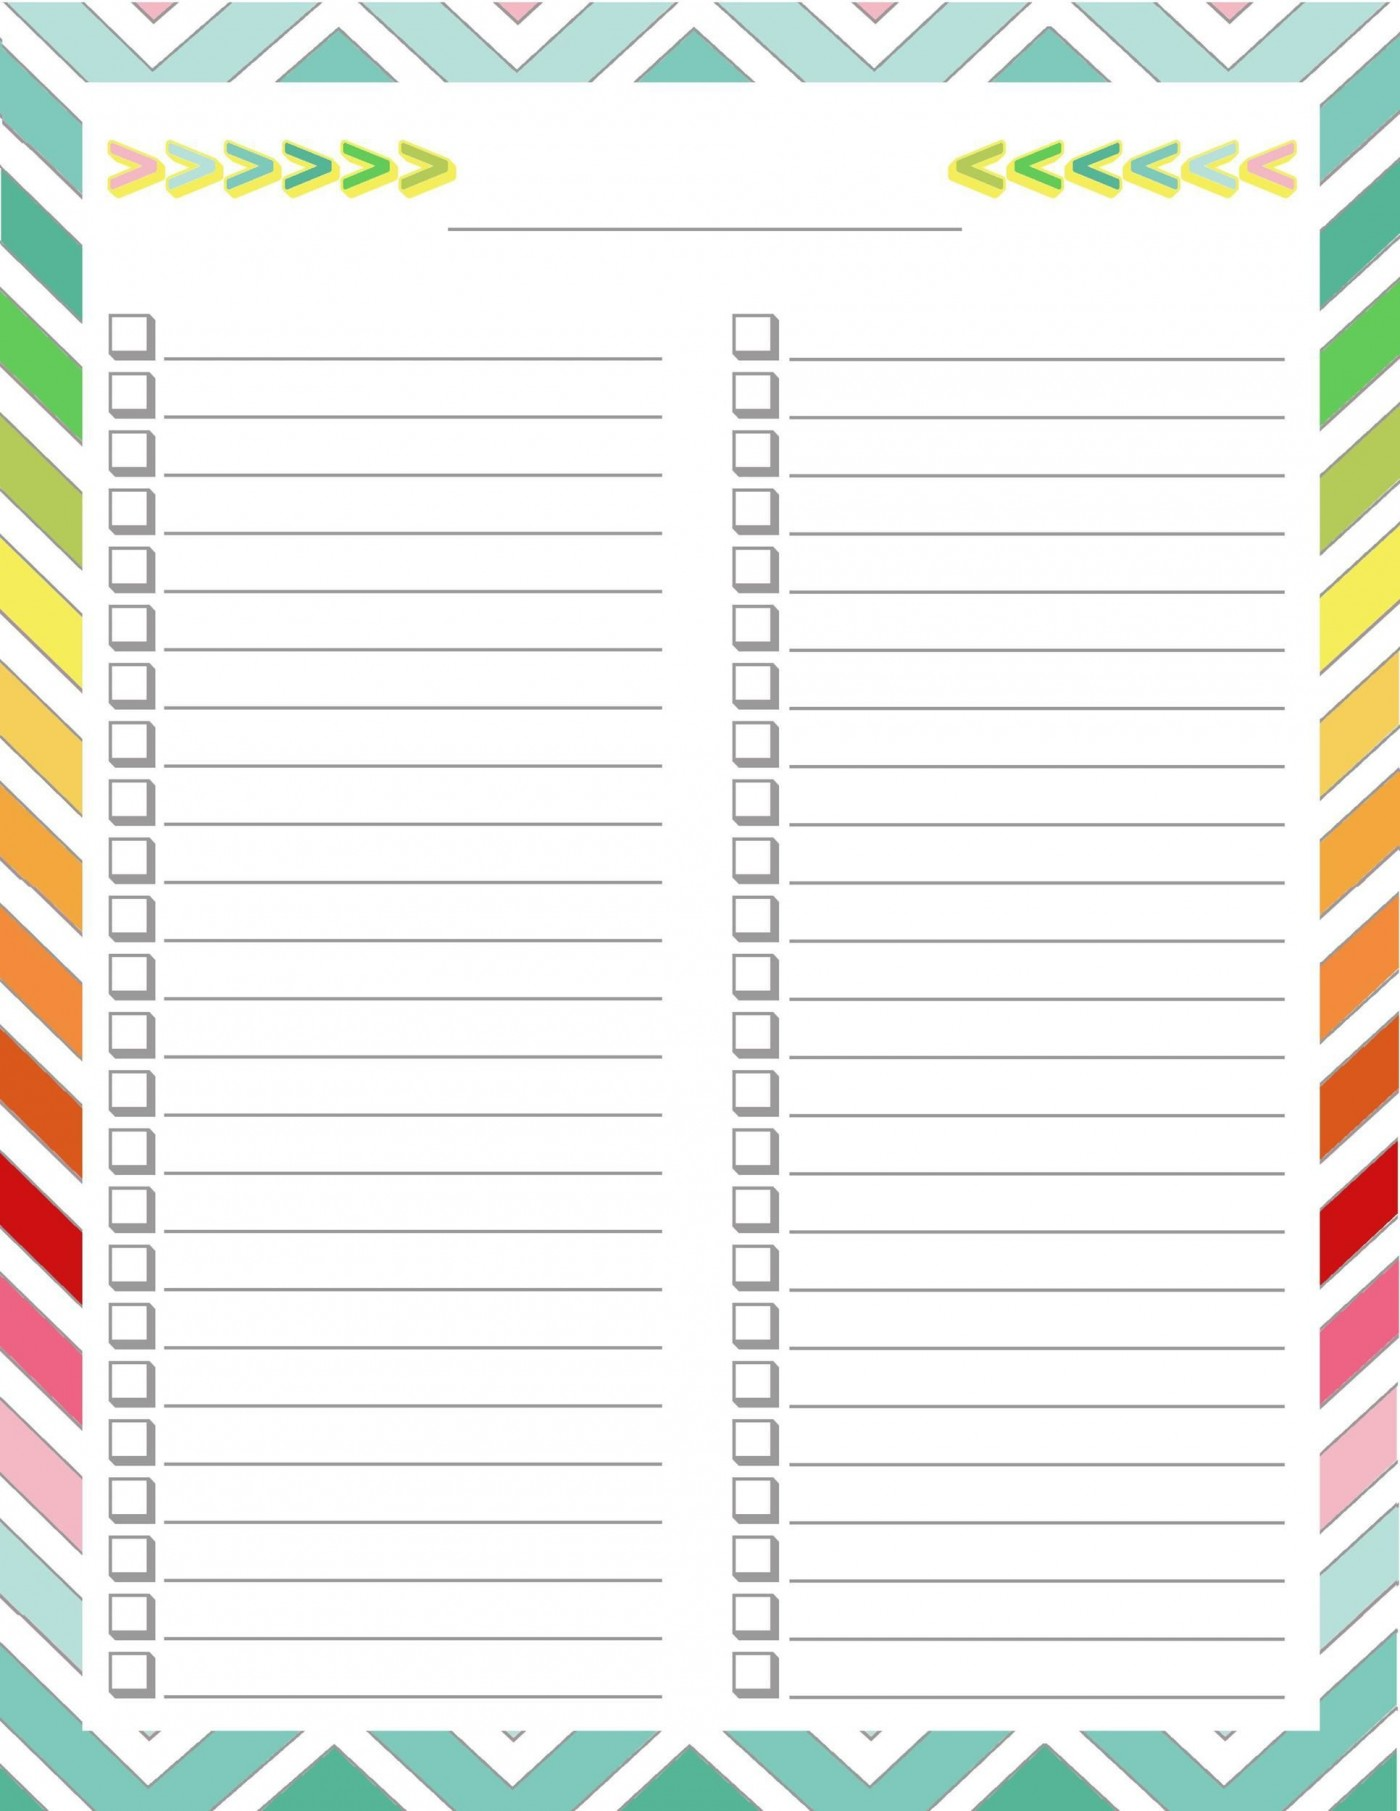 004 Archaicawful To Do Checklist Template Concept 1400